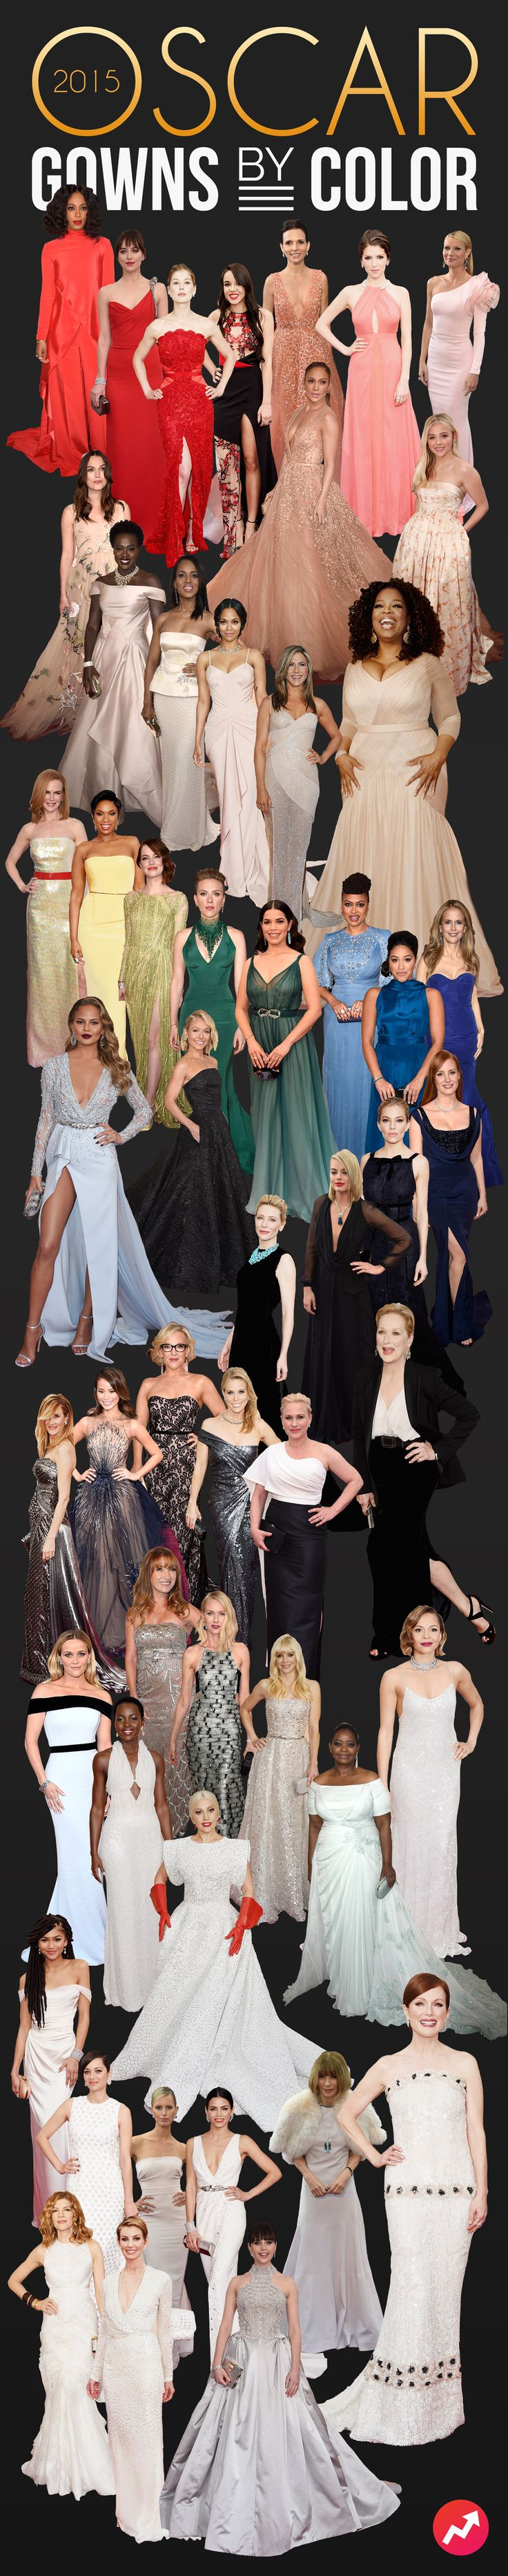 All Of The Amazing Oscar Gowns In Every Color Of The Rainbow